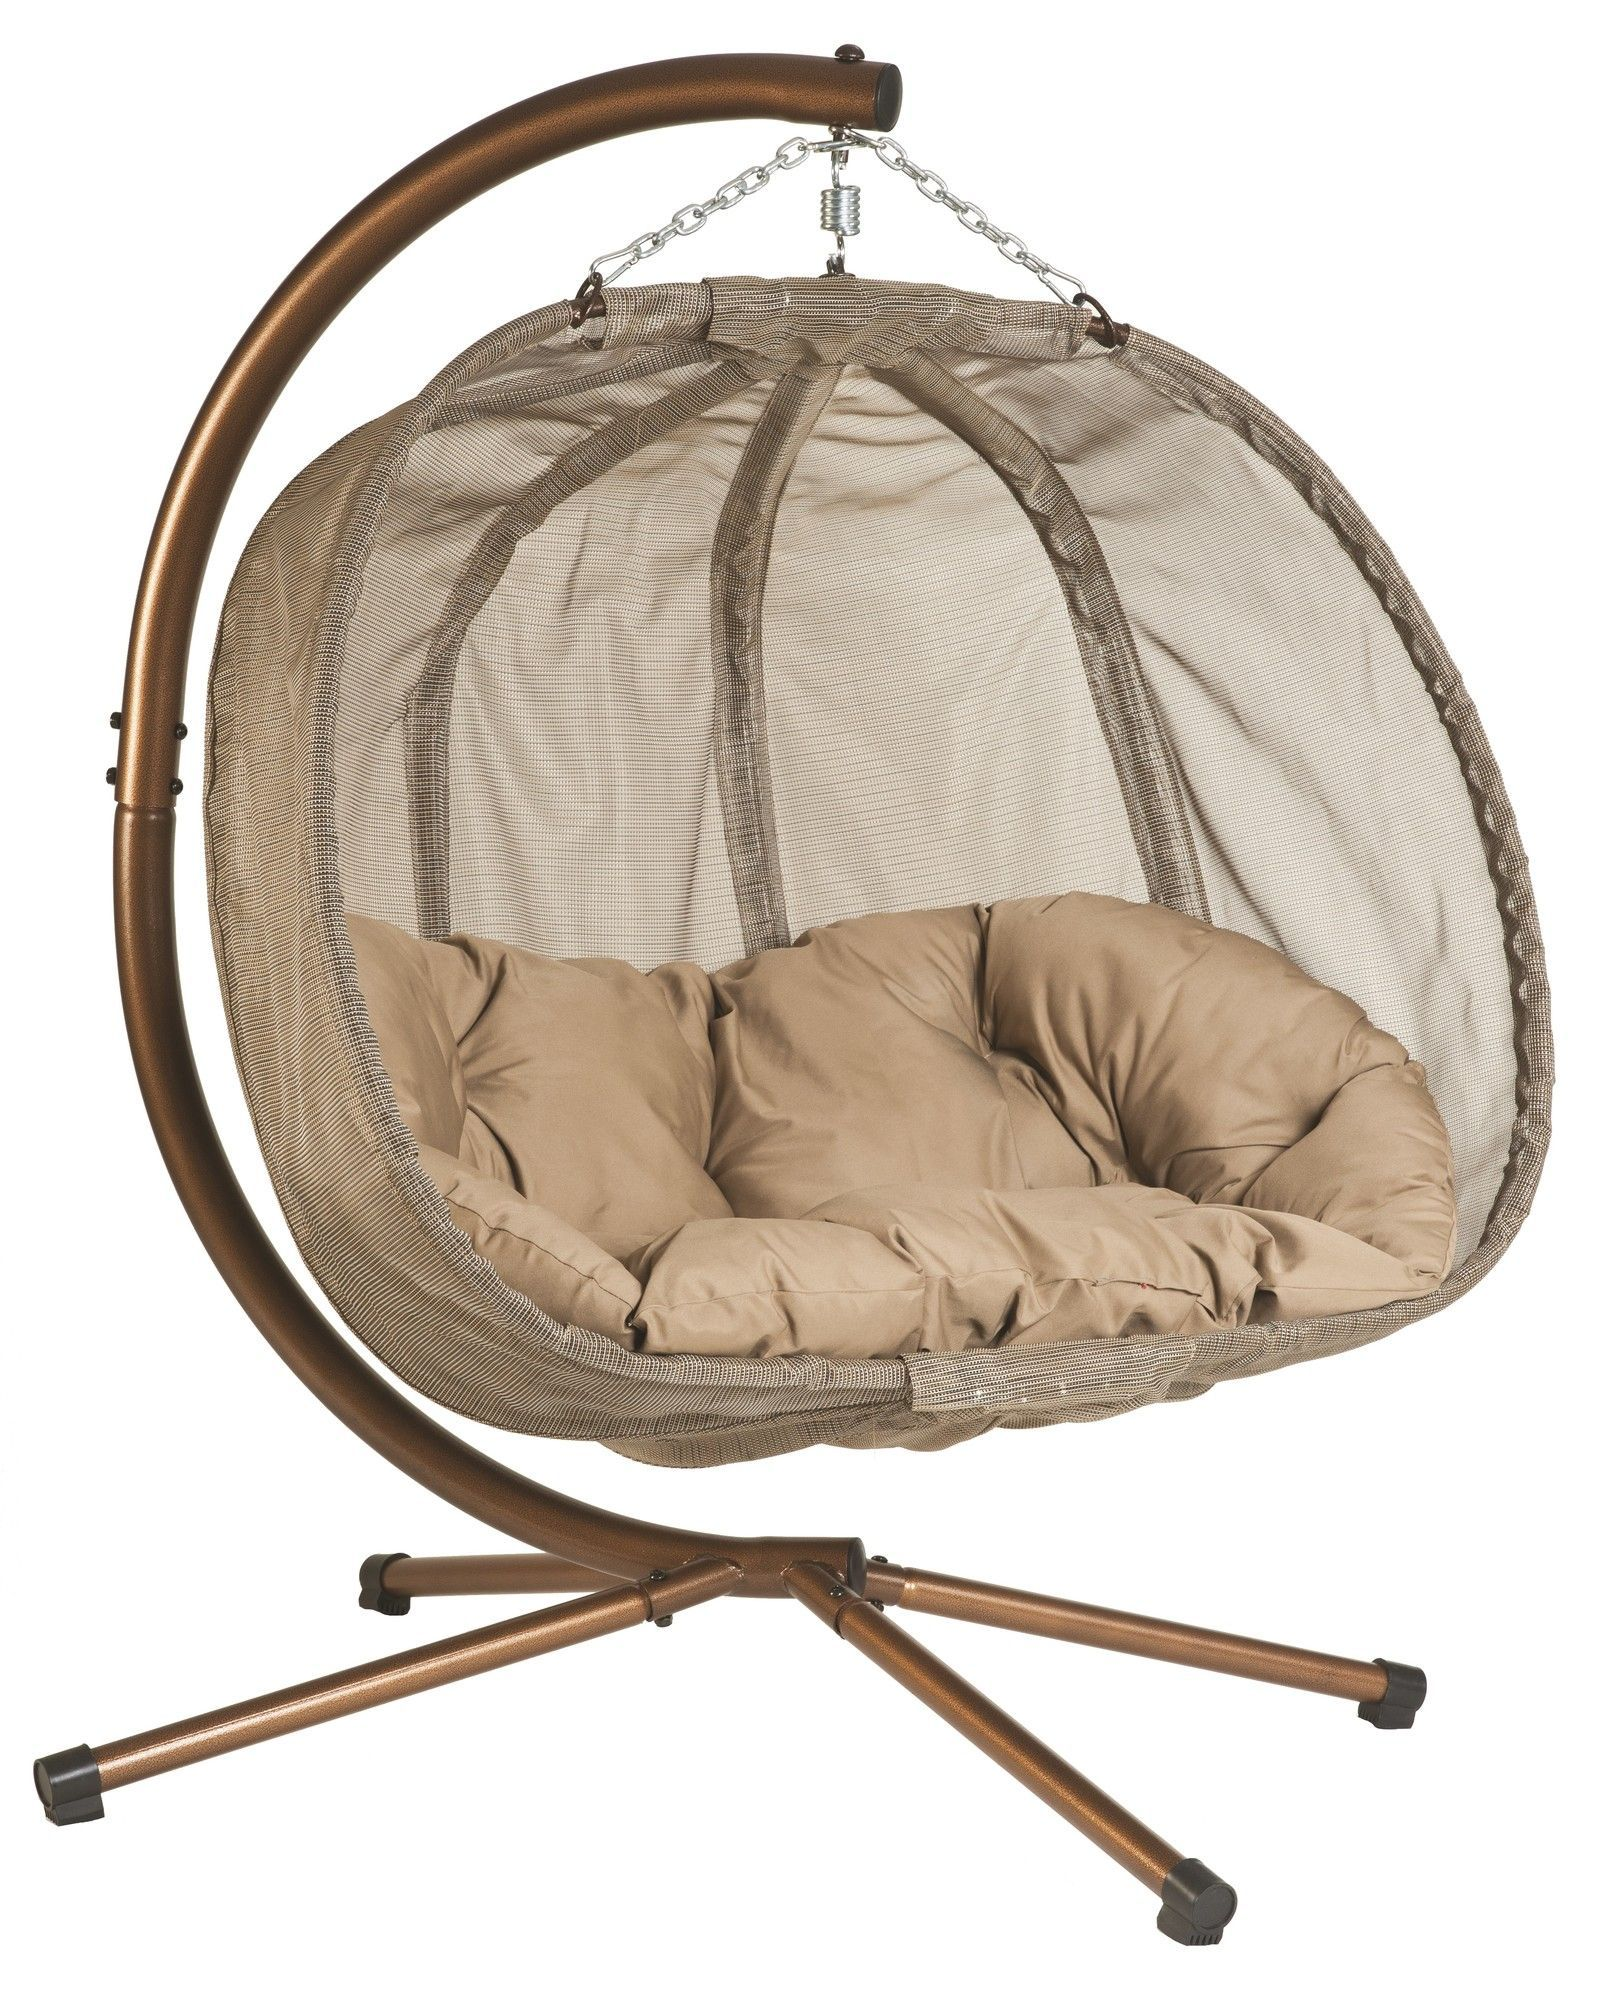 Cool Hammock Pumpkin Swing Chair With Stand Swing Chairs Swings And Hammock